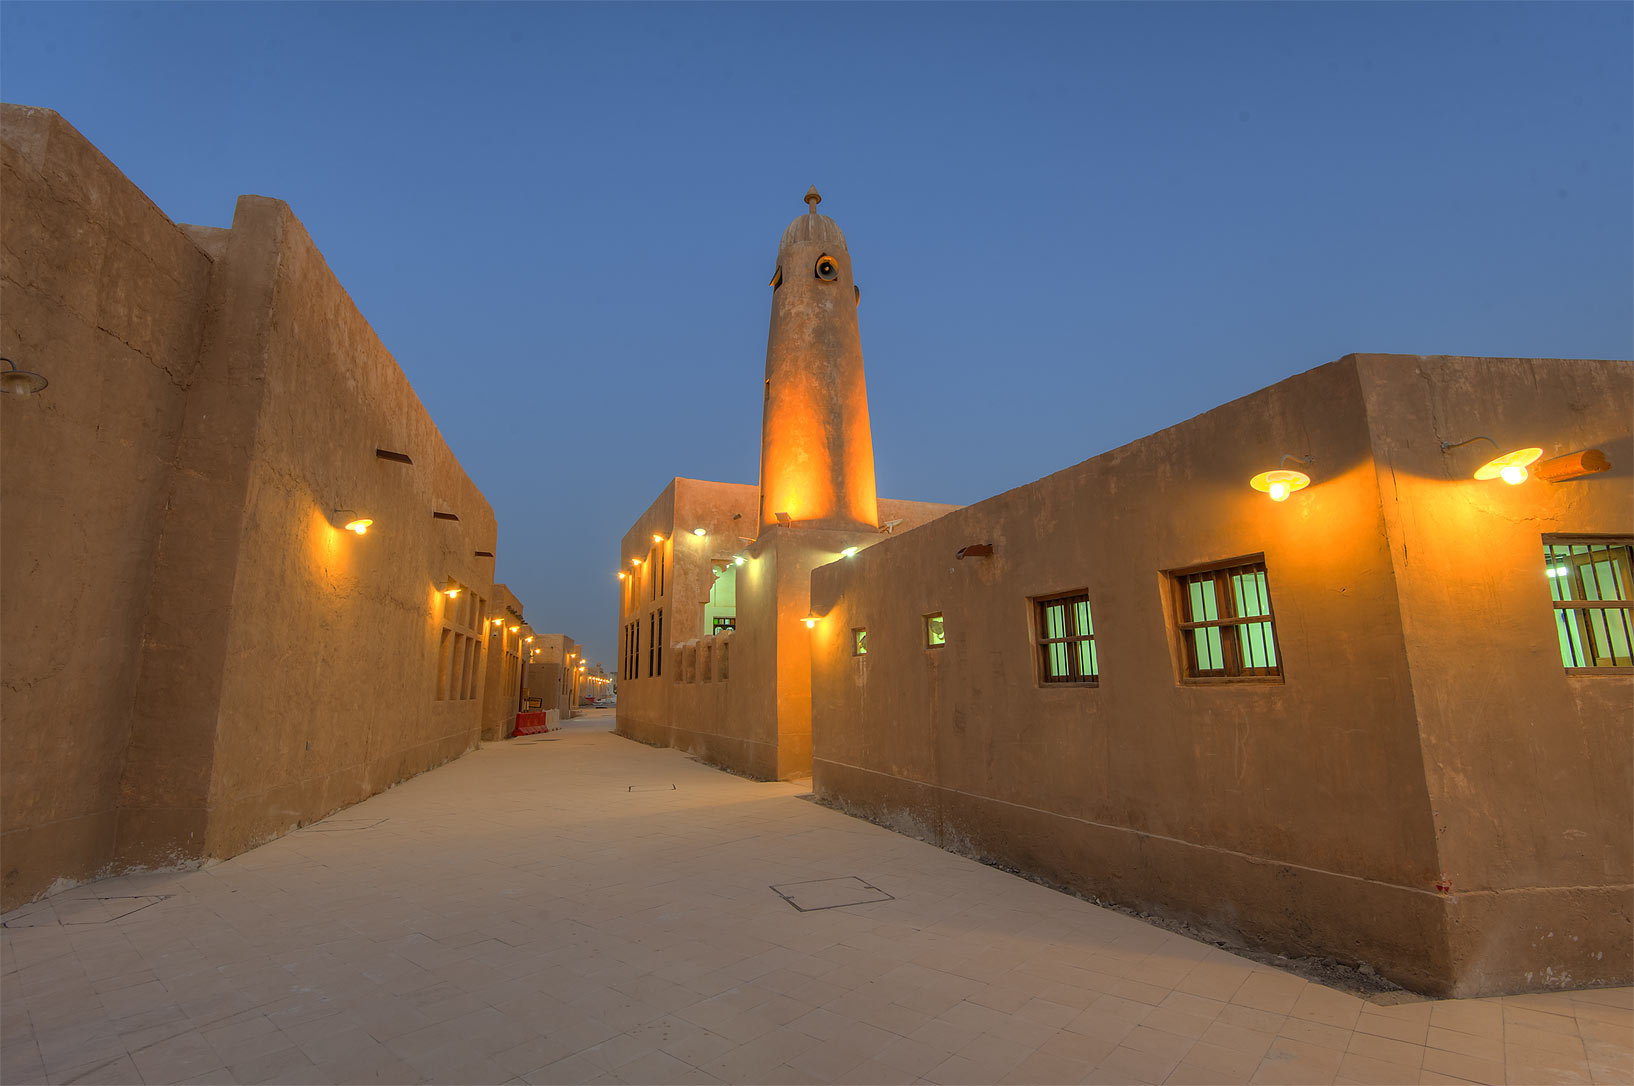 Minaret and stone walls in Al Wakra Heritage Village (Souq Waqif in Al Wakrah). Qatar